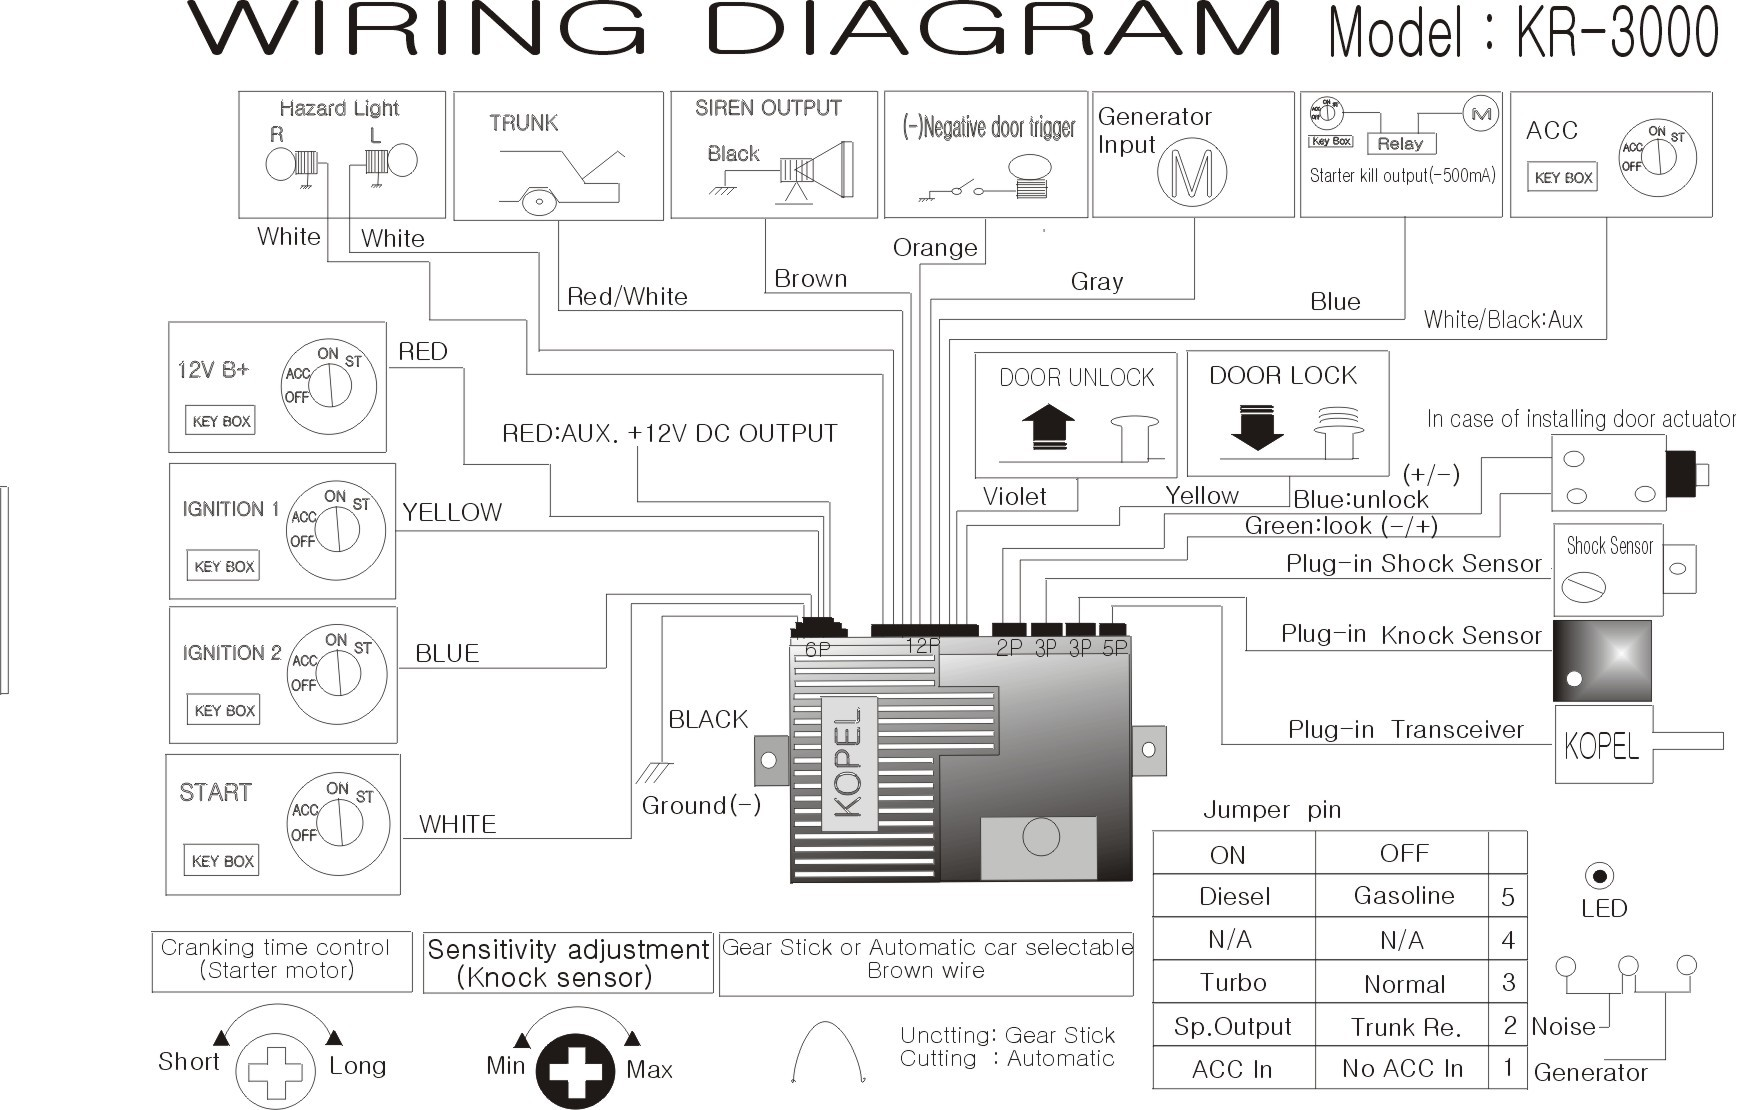 Vehicle Wiring Diagrams for Alarms New Car Alarm Wiring Diagram toyota for Inside Webtor